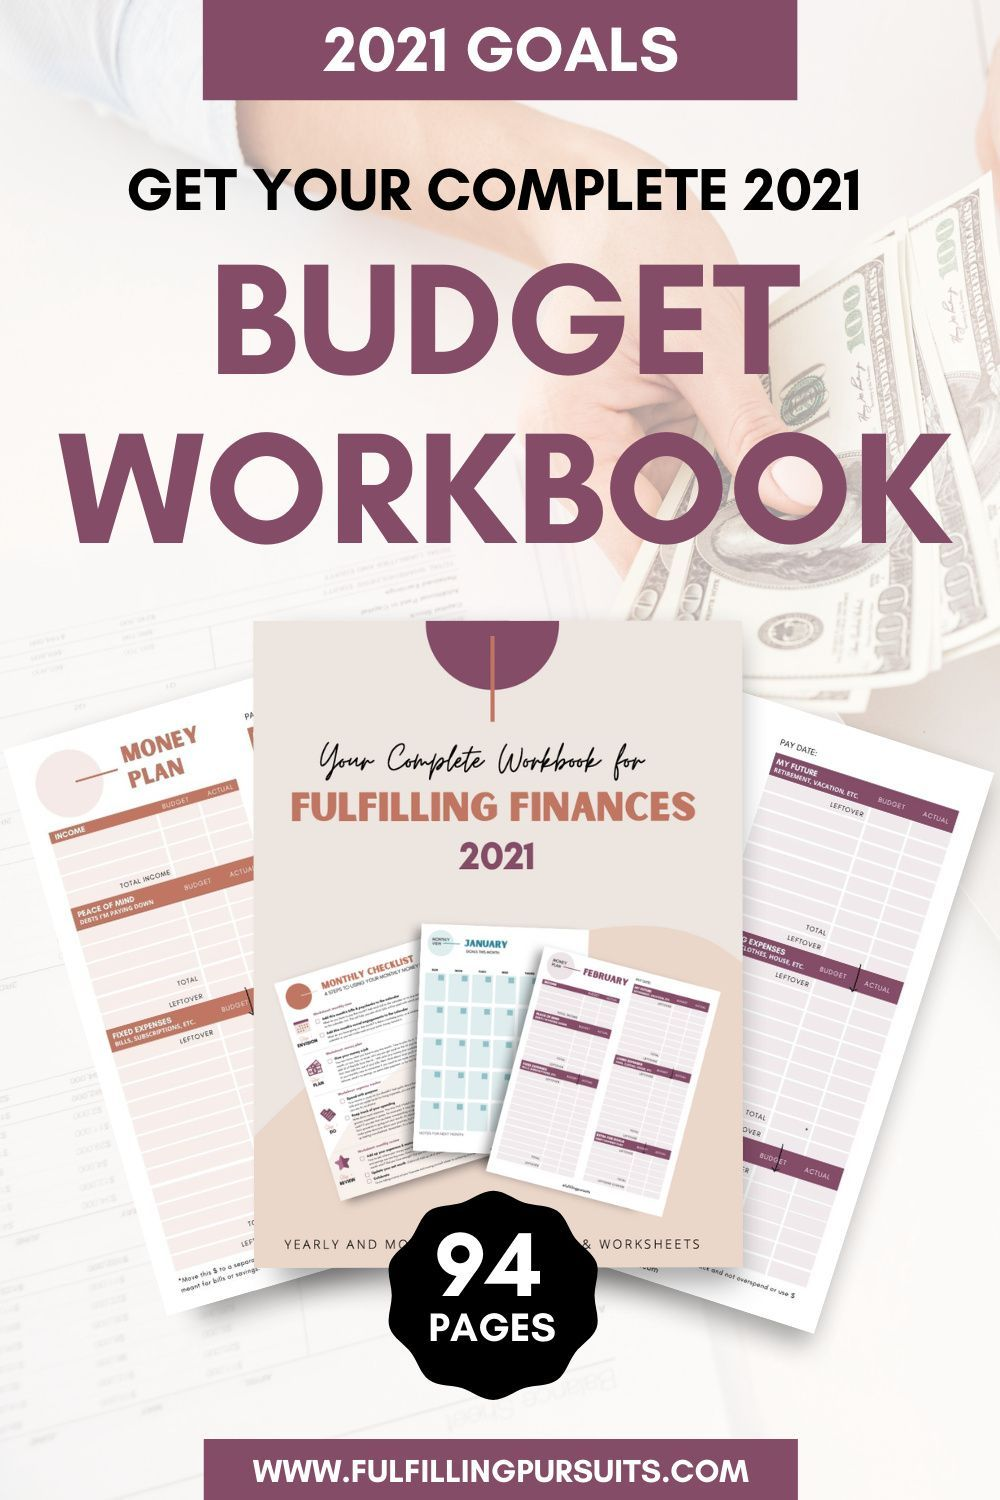 2021 Complete Budget Workbook Printable 94 Pages Etsy Budgeting Money Plan Budgeting Money [ 1500 x 1000 Pixel ]